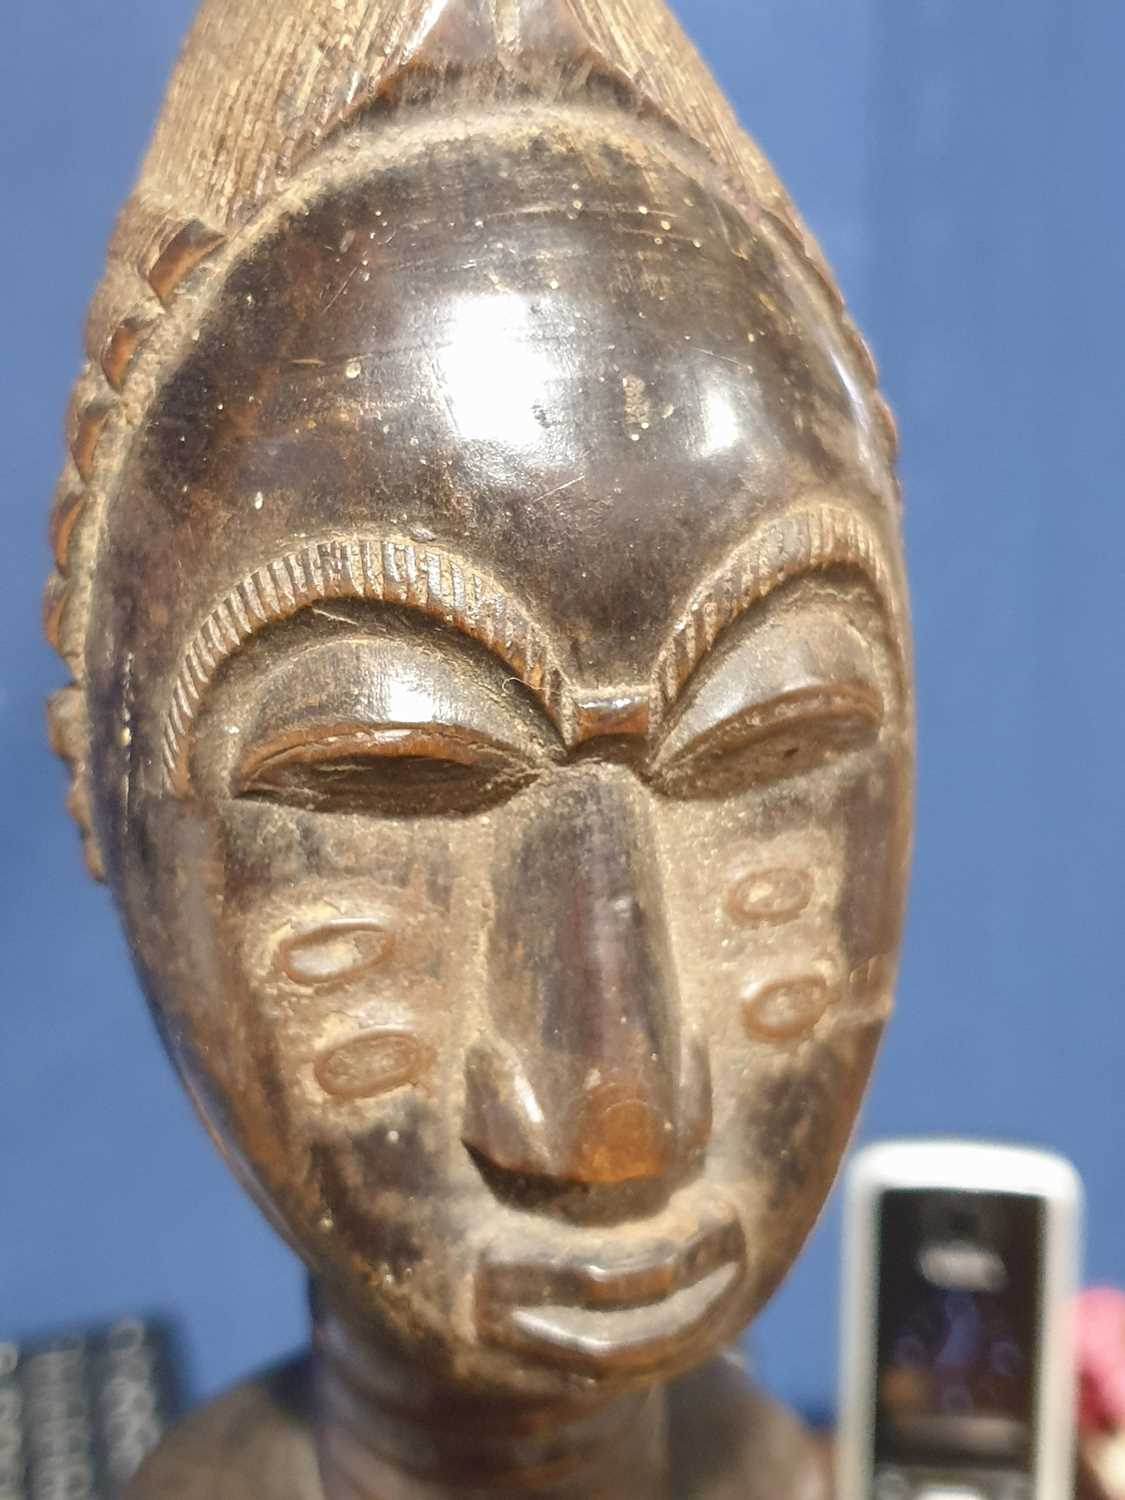 A Baule standing male figure, Blolo Bian, Ivory Coast, the coiffure with linear decoration, the face - Image 11 of 15